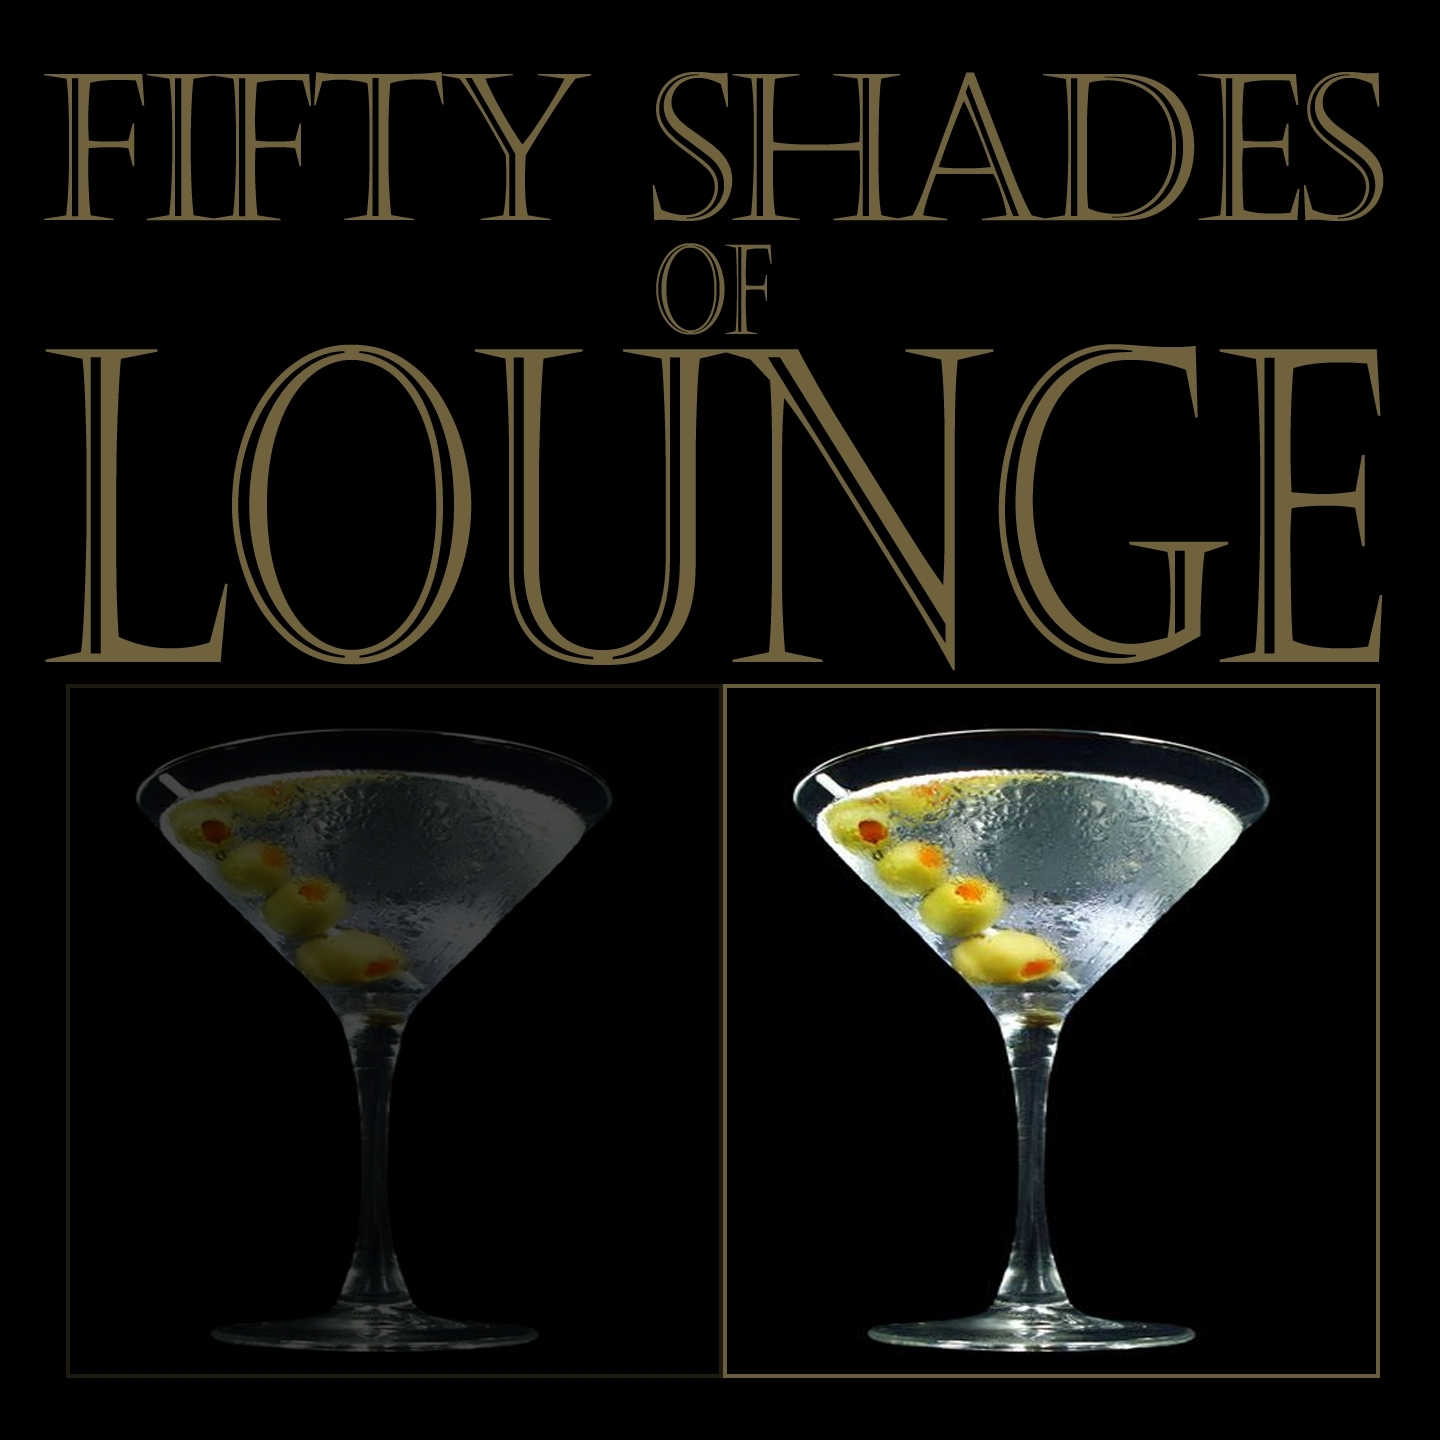 Fifty Shades of Lounge